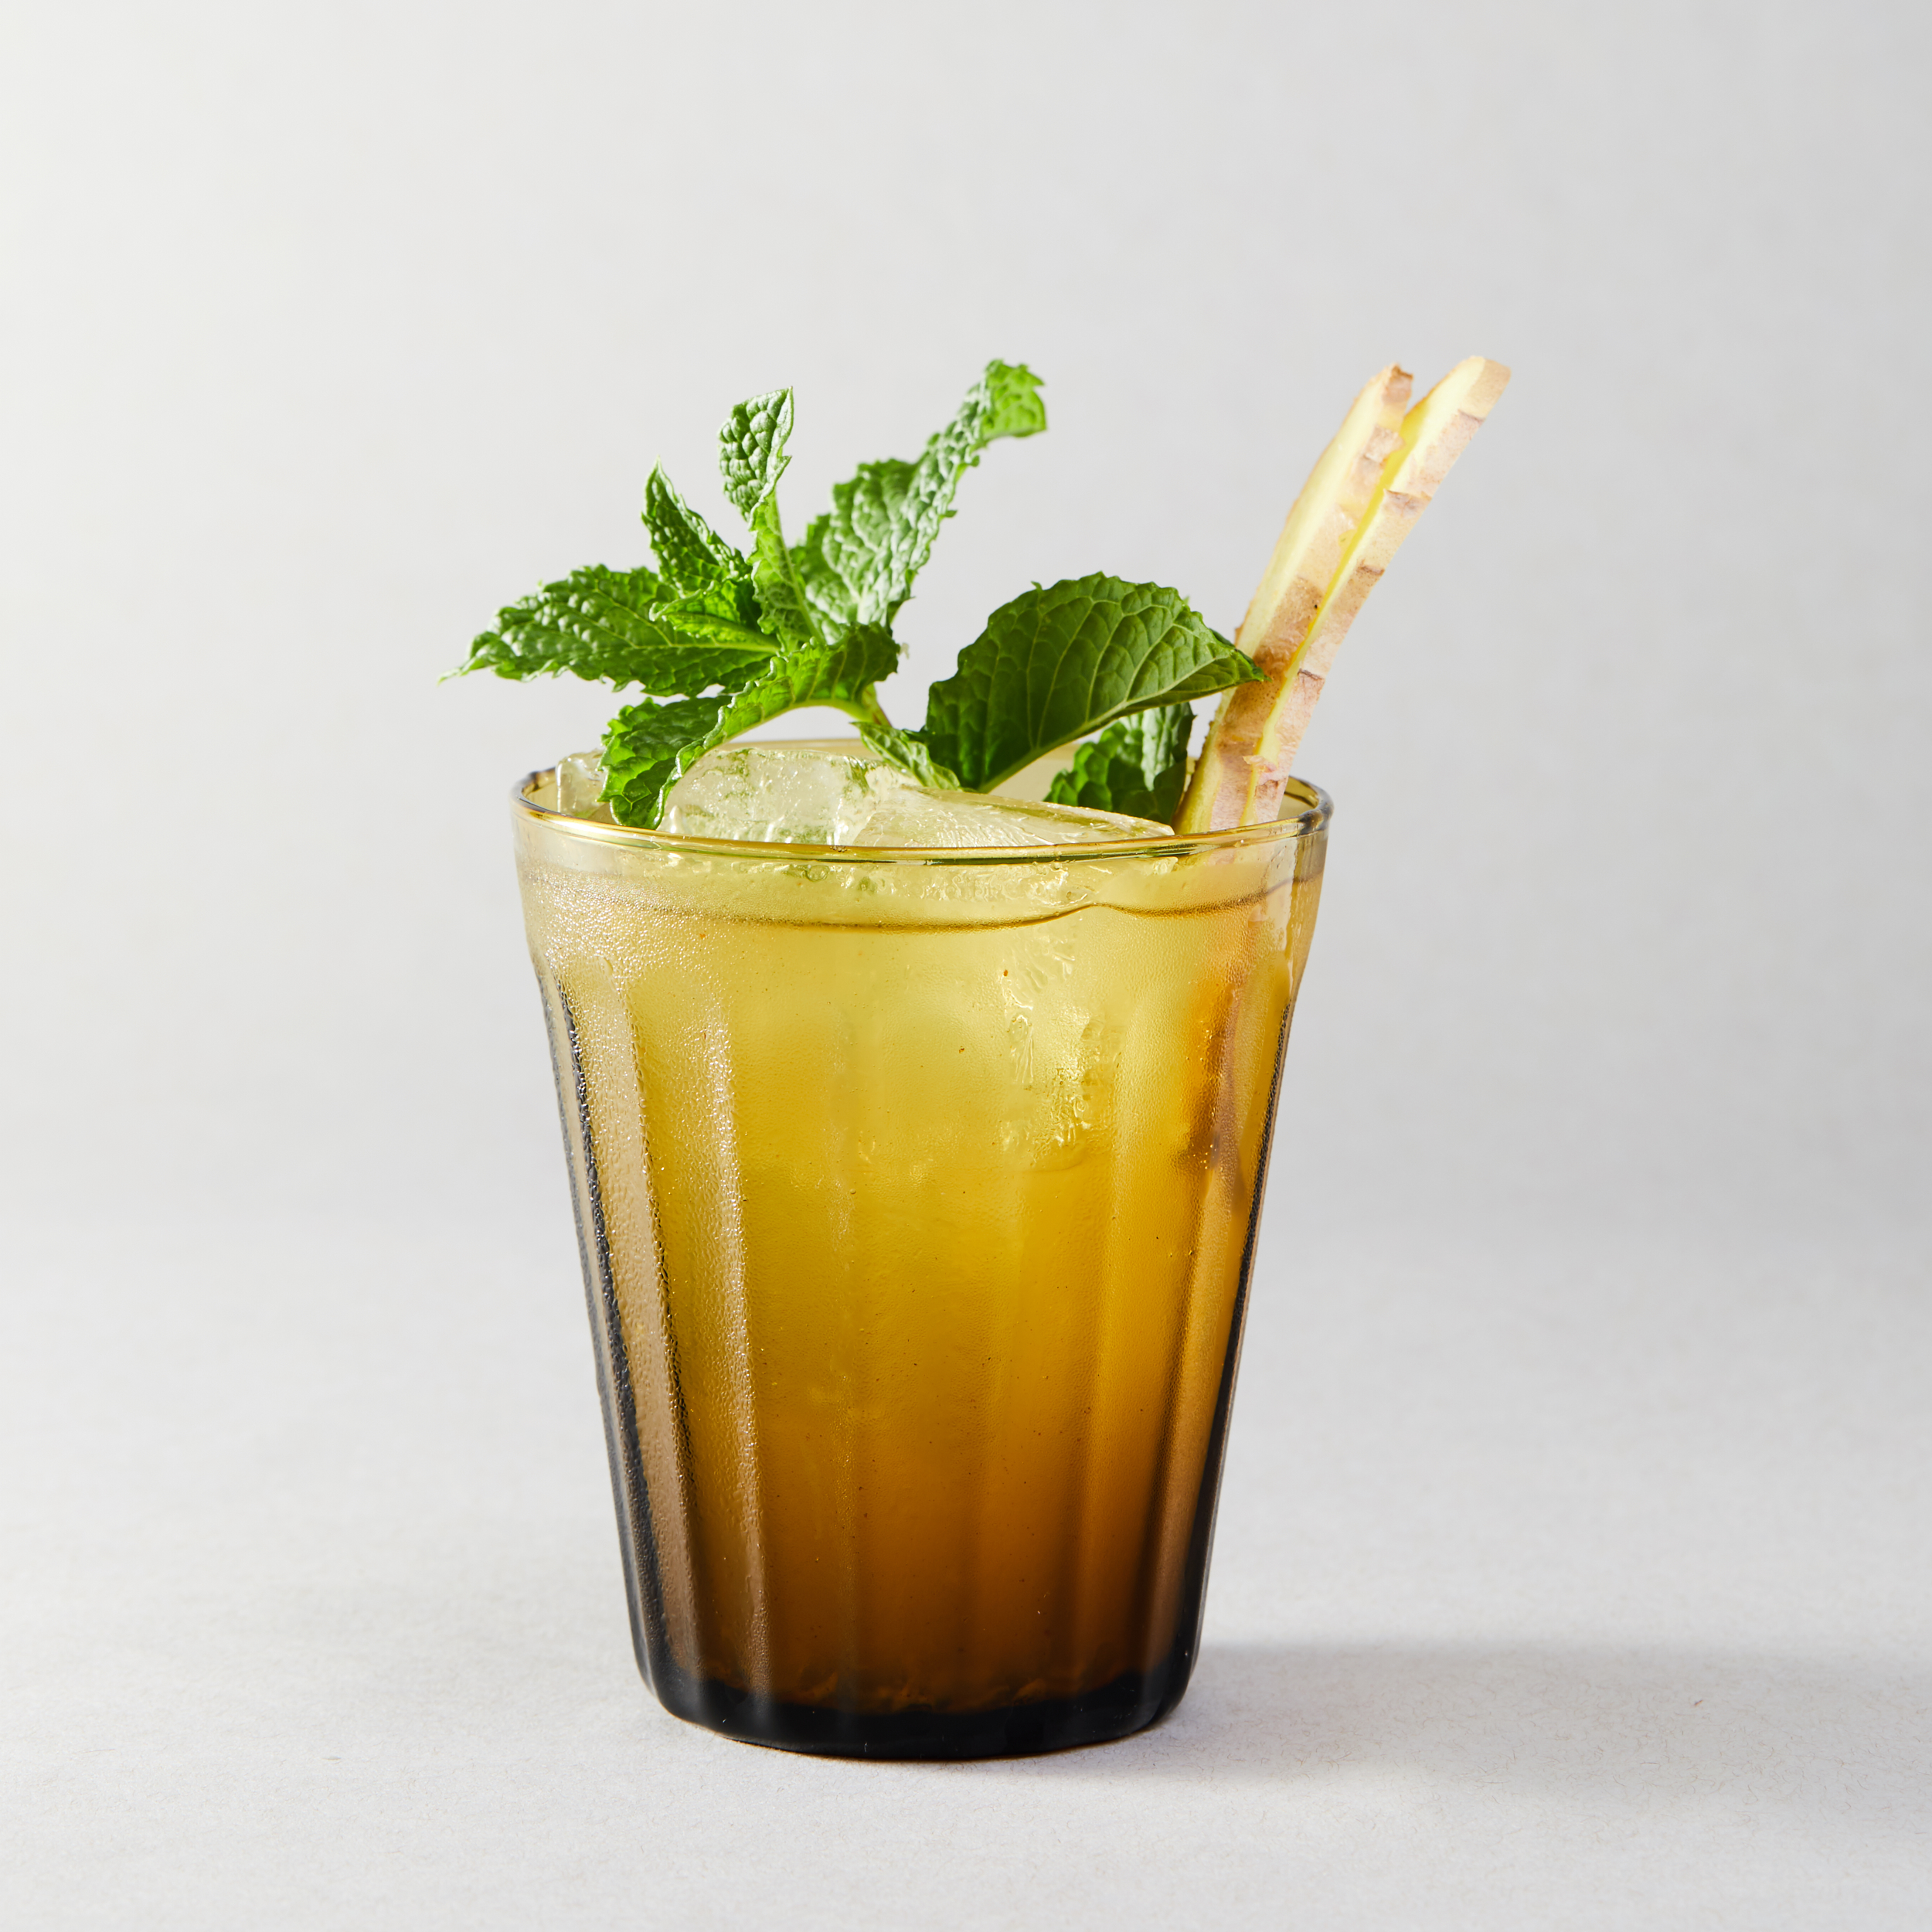 07_Mixers_Cocktails_Ginger_Mule_008.jpg